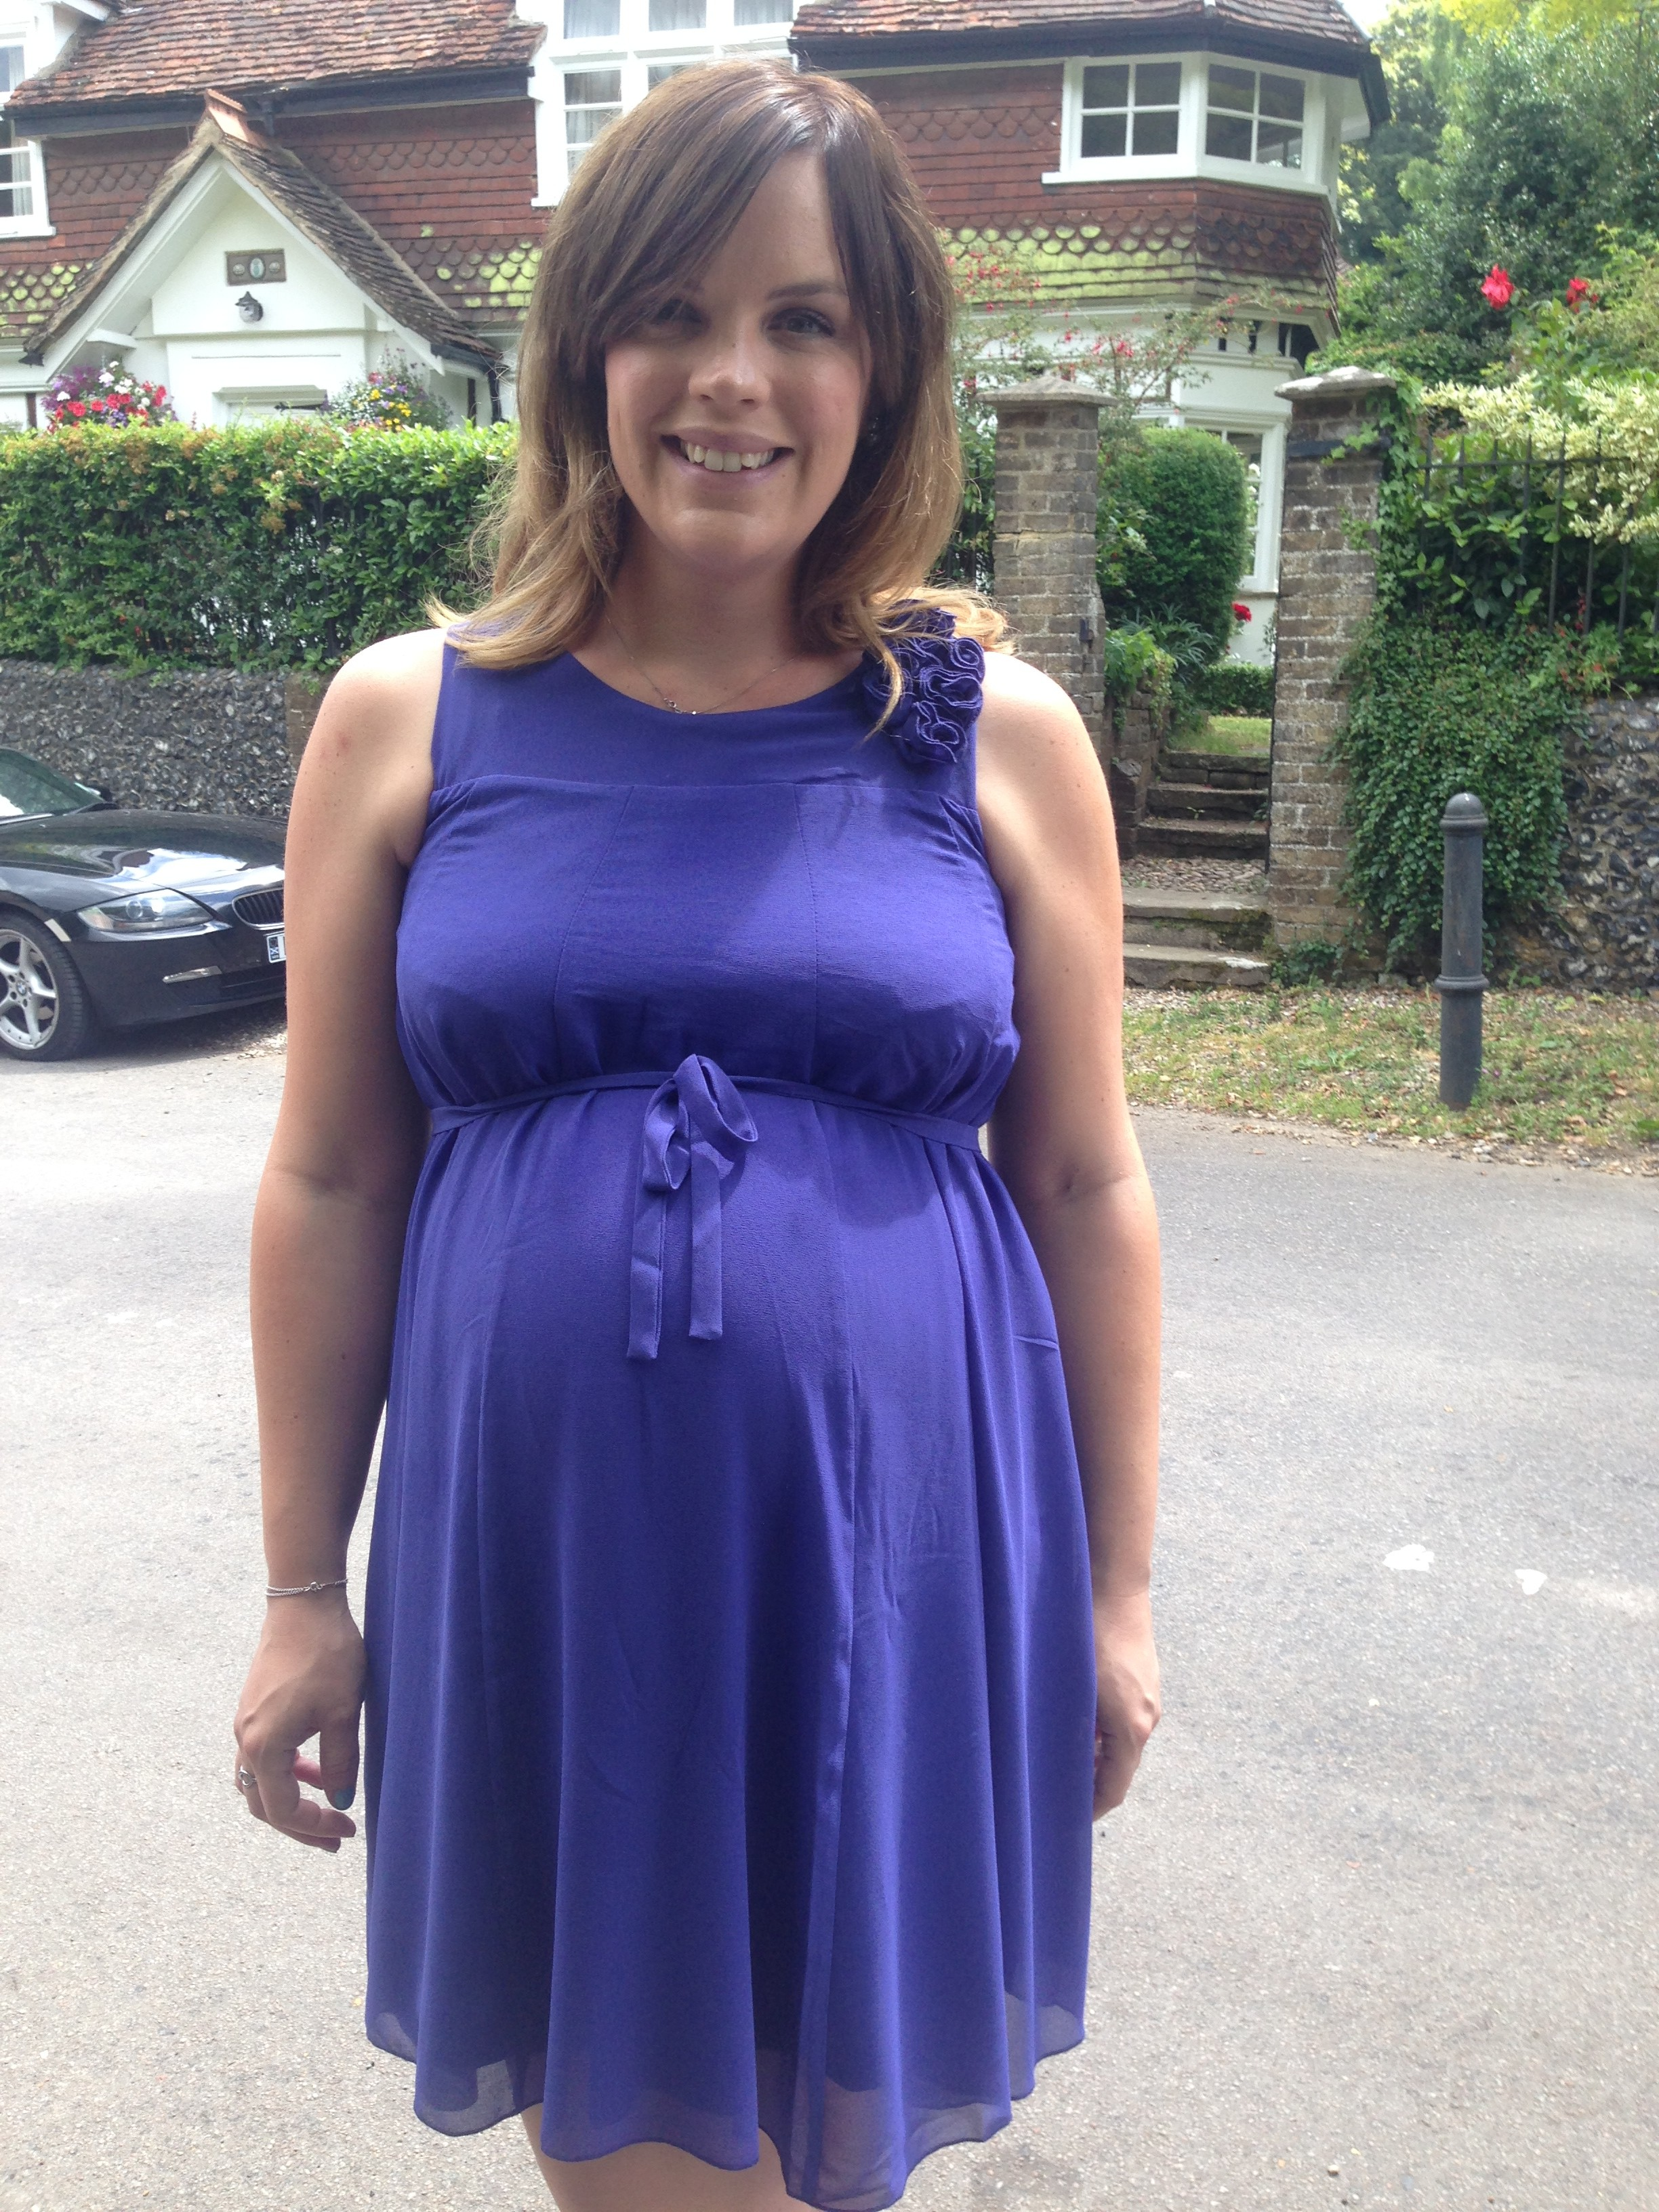 Top tips for surviving a wedding in your final trimester for Wedding guest pregnancy dresses